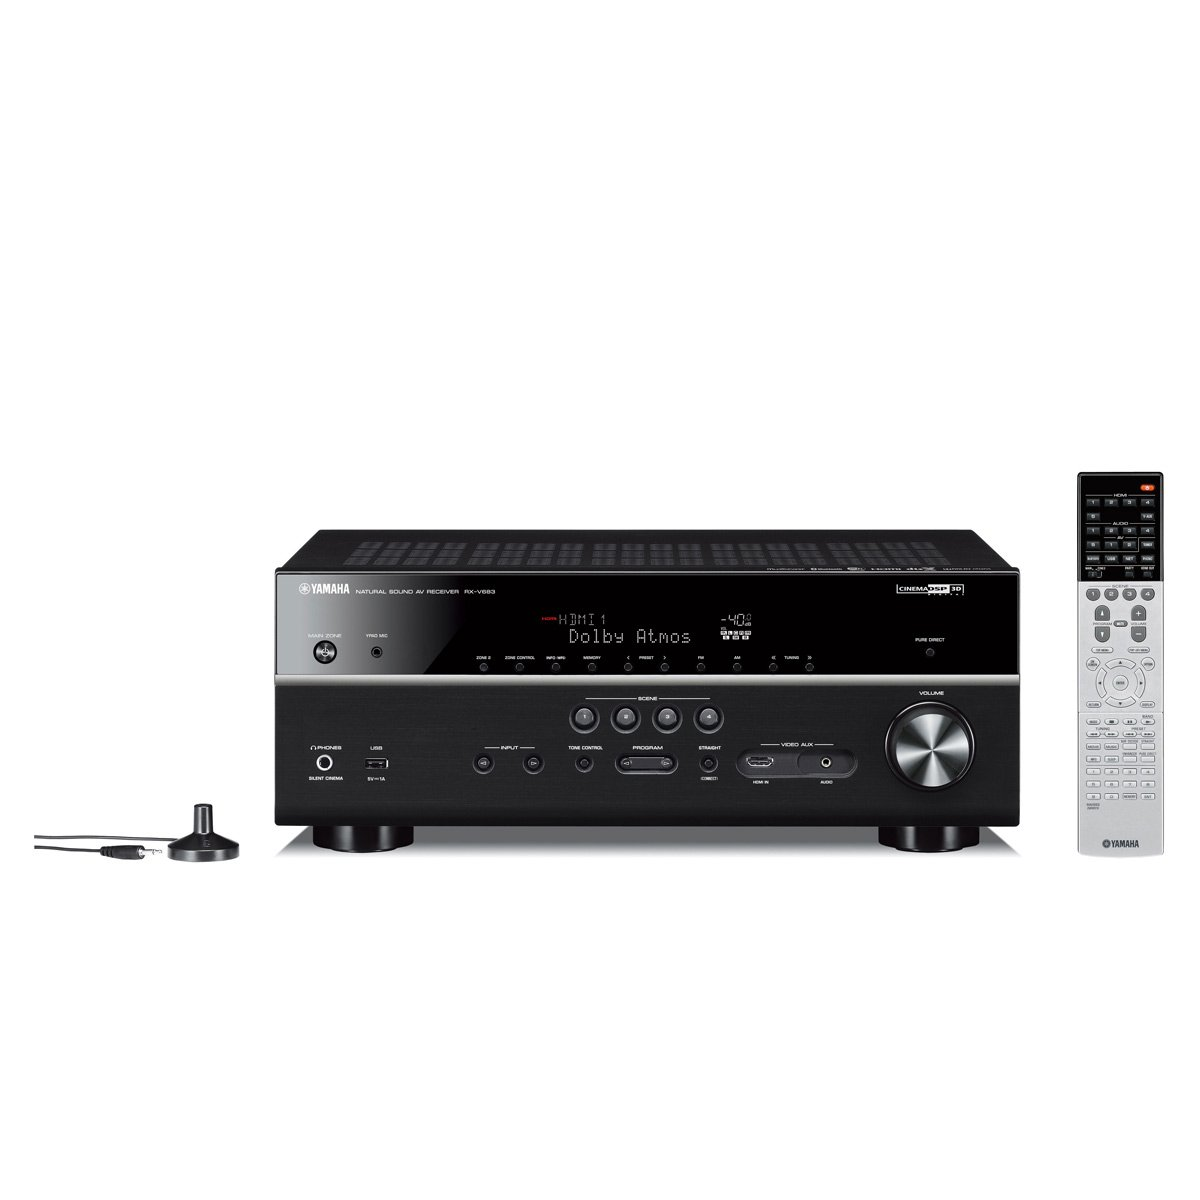 Amazon.com: Yamaha RX-V683 7.2 Channel AV Network Receiver with Dolby Atmos and DTS:X Surround Sound with WX-010 MusicCast Wireless Speaker (Black): Home ...